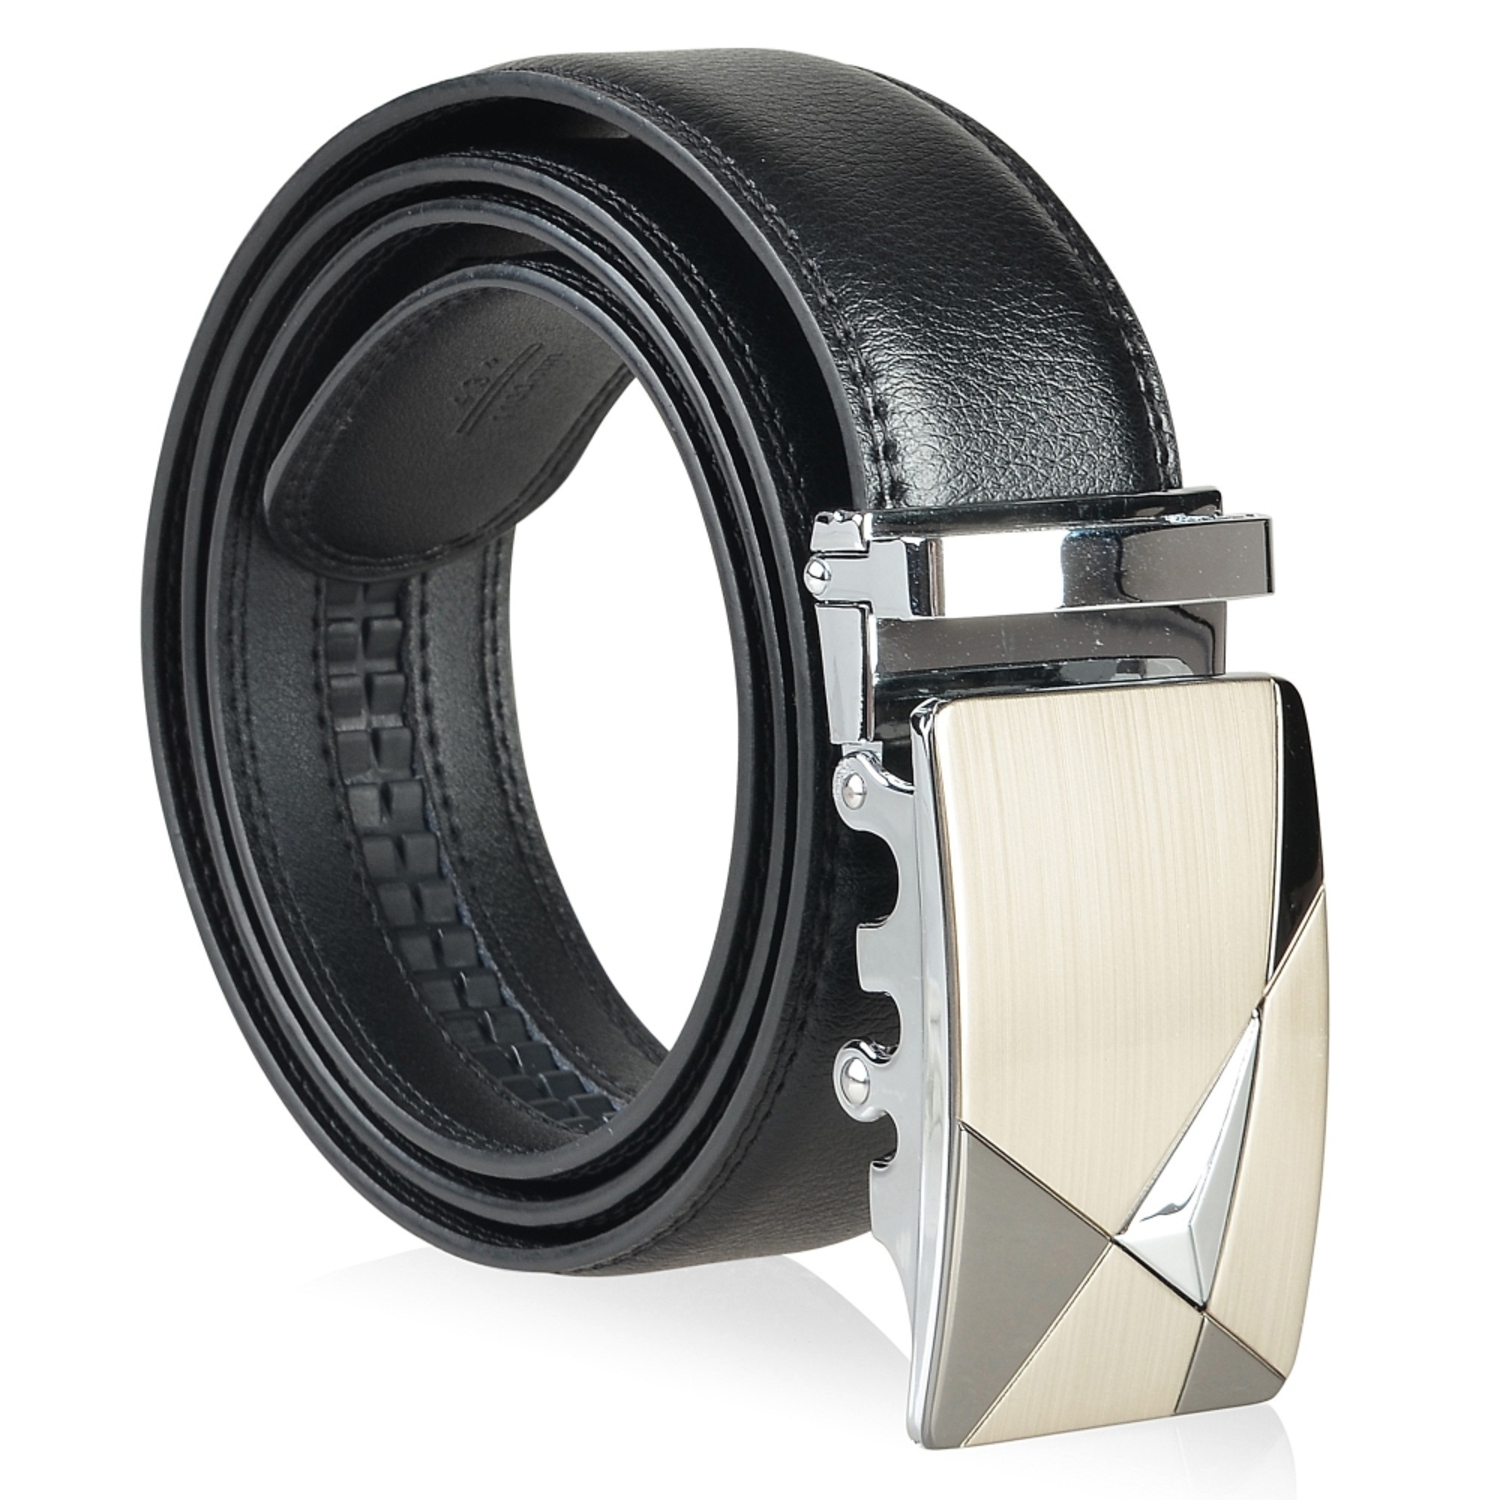 Zodaca Genuine Leather Mens Automatic Buckle Belt (with Gift Box) Men's Sleek Design Stylish Classic, Black